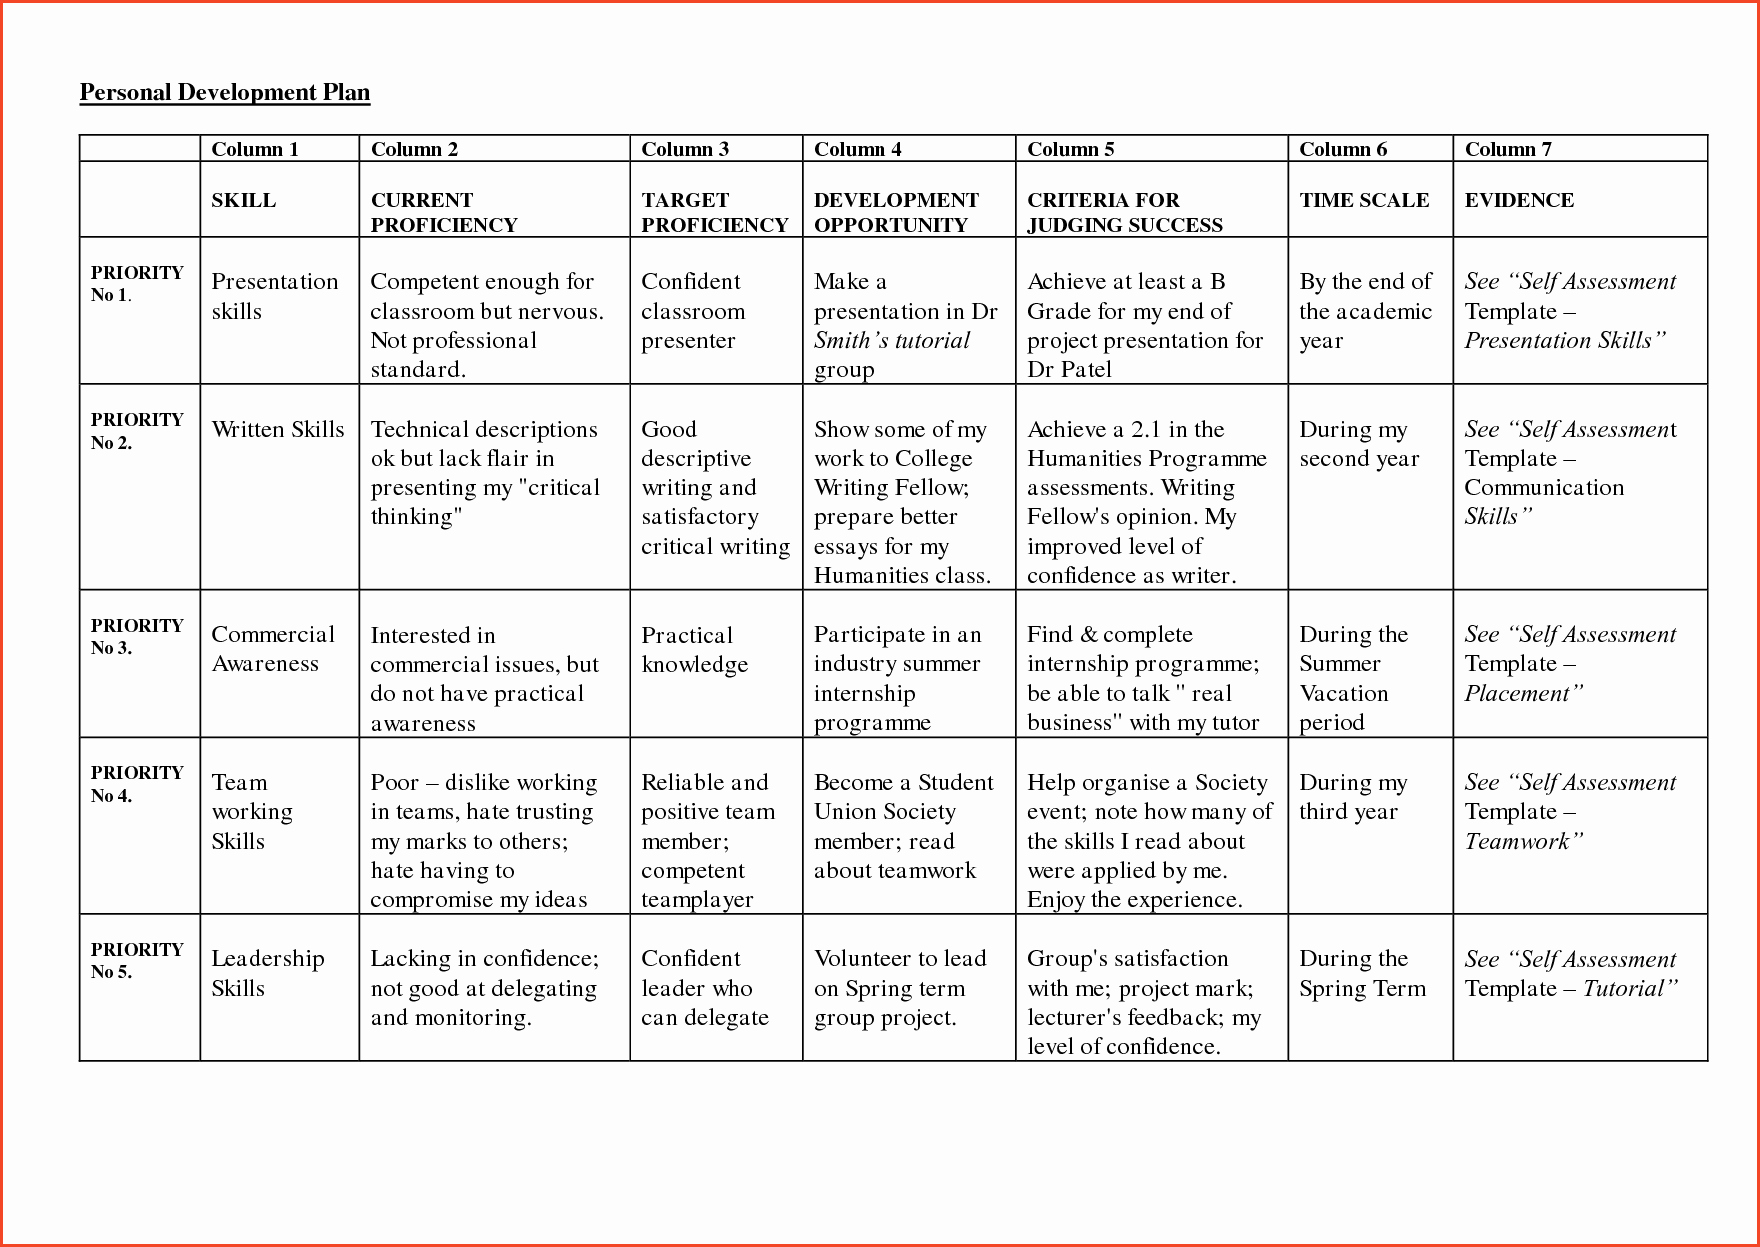 Professional Development Plan Template Awesome Professional Development Plan Template